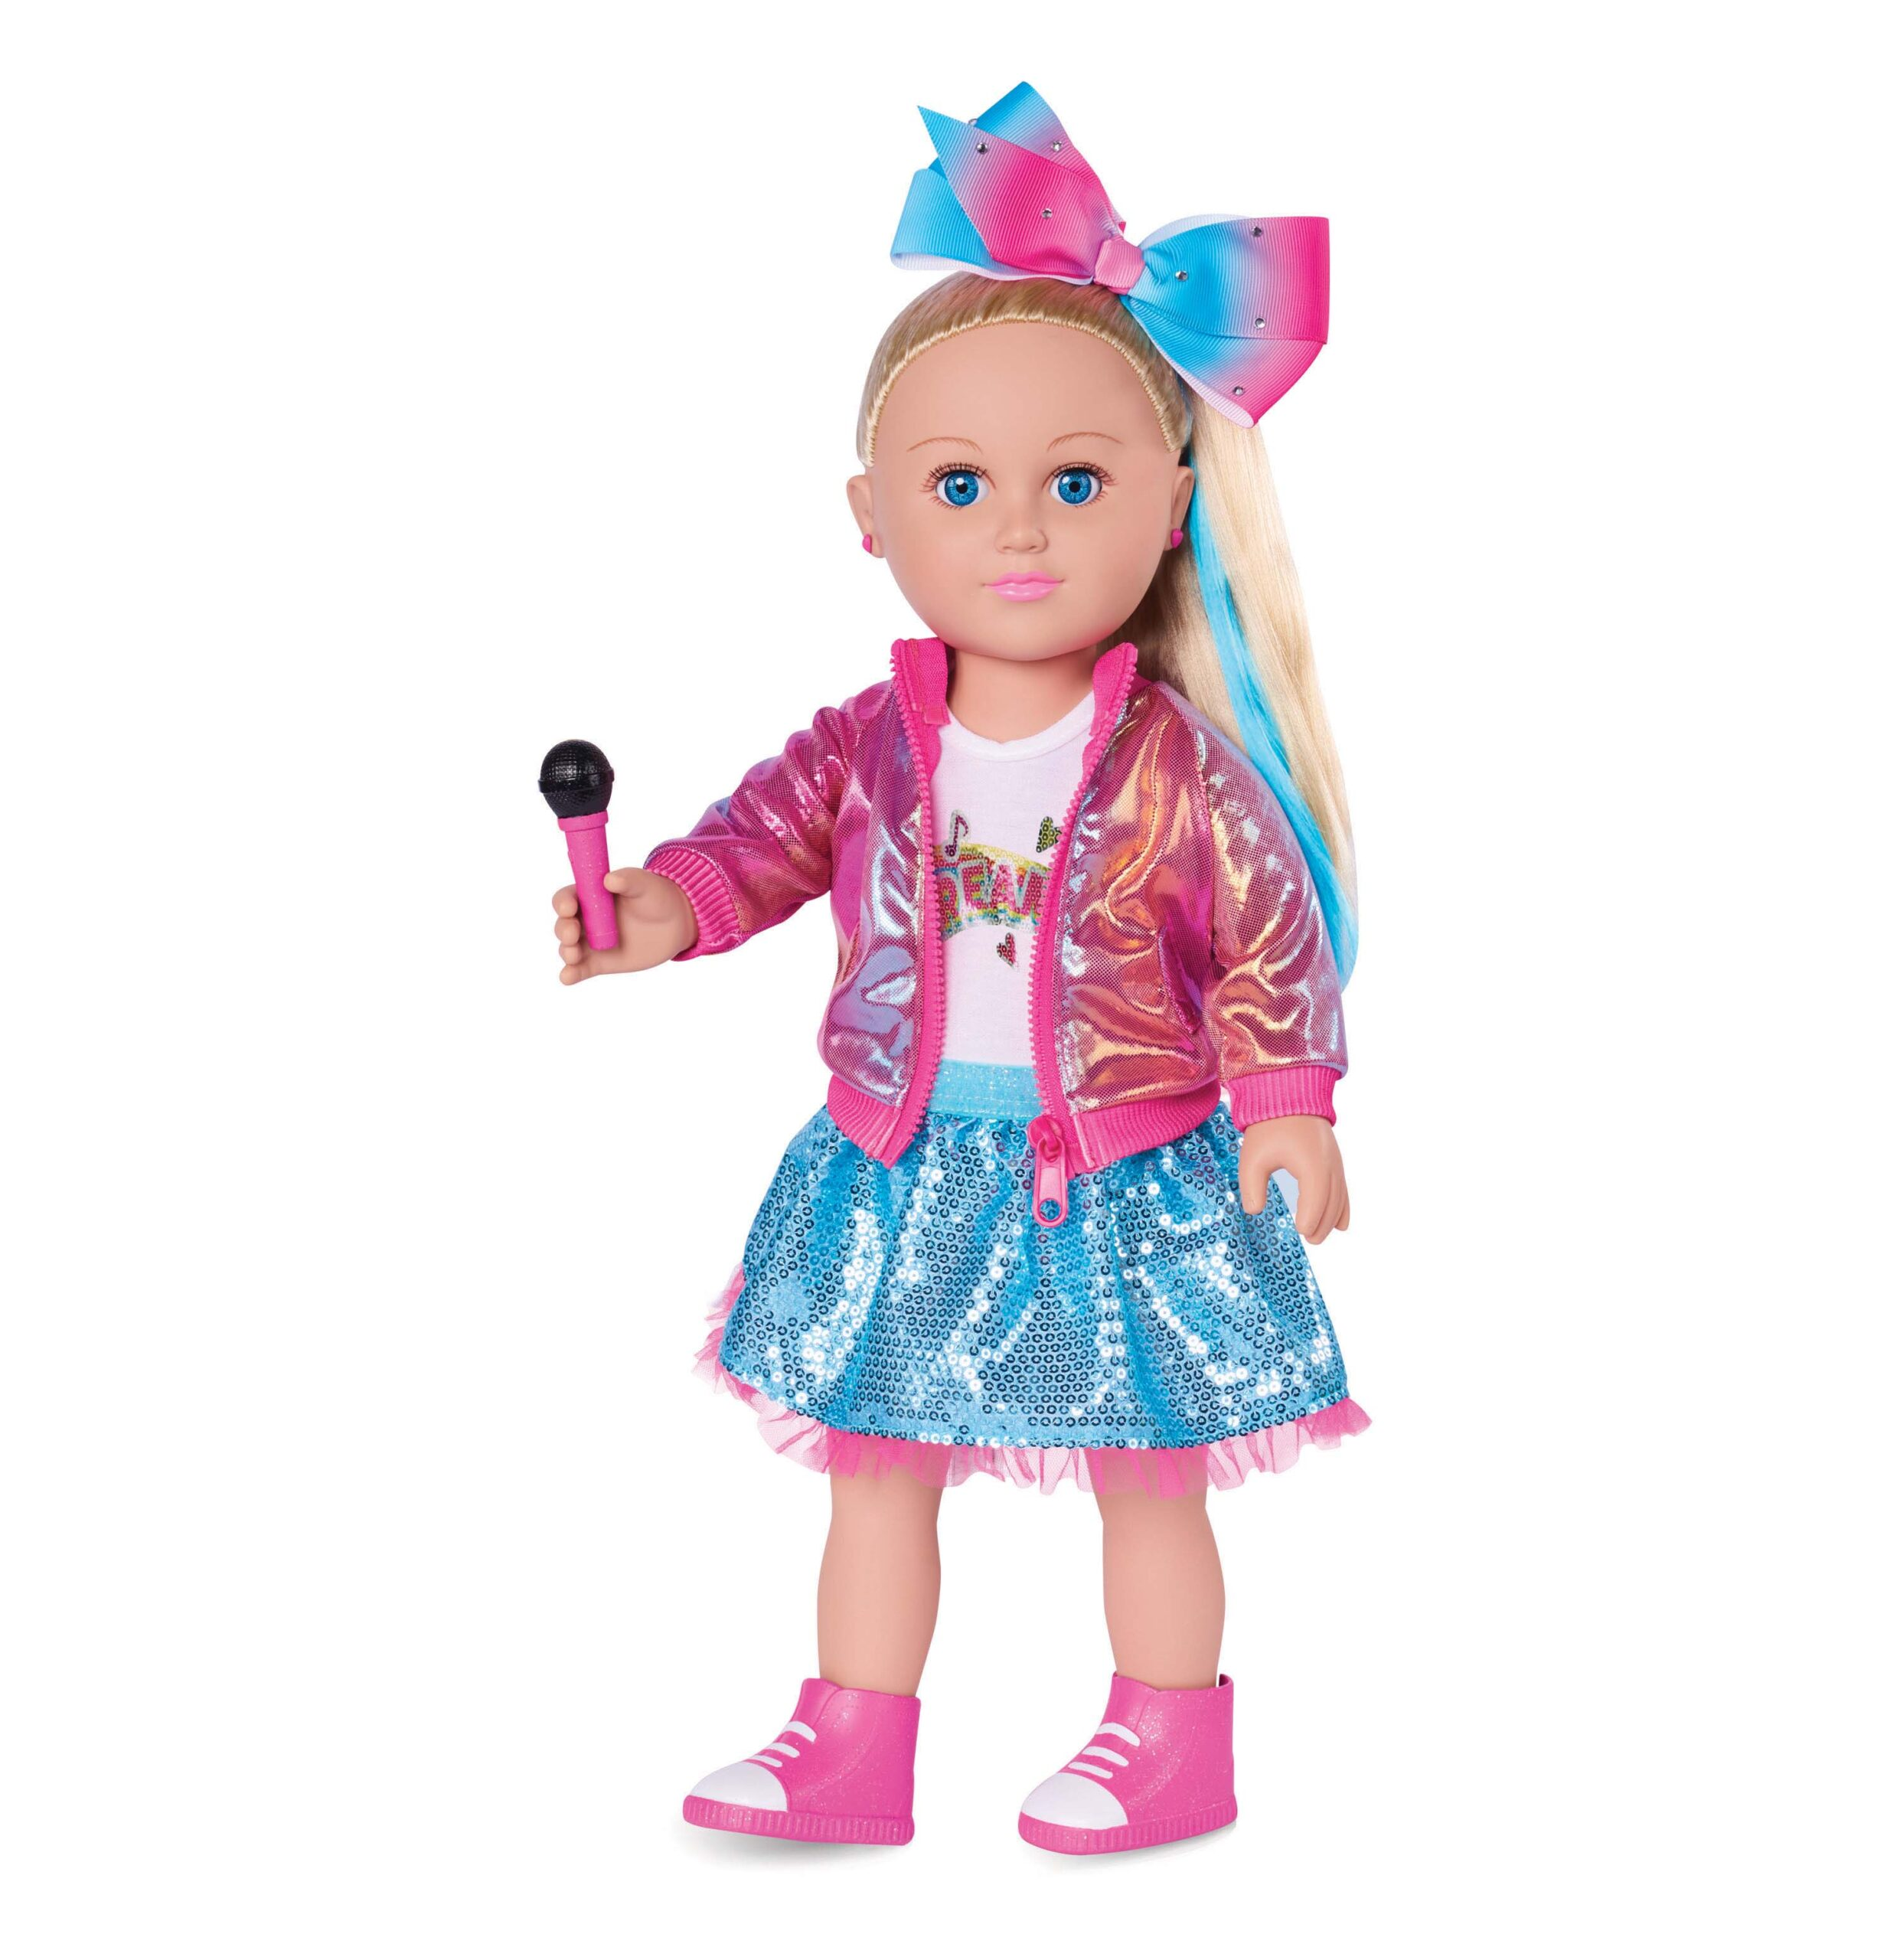 My Life As JoJo Siwa Doll, 18-inch Soft Torso Doll with Blonde Hair, Dance Party 2019 Release (Walmart)